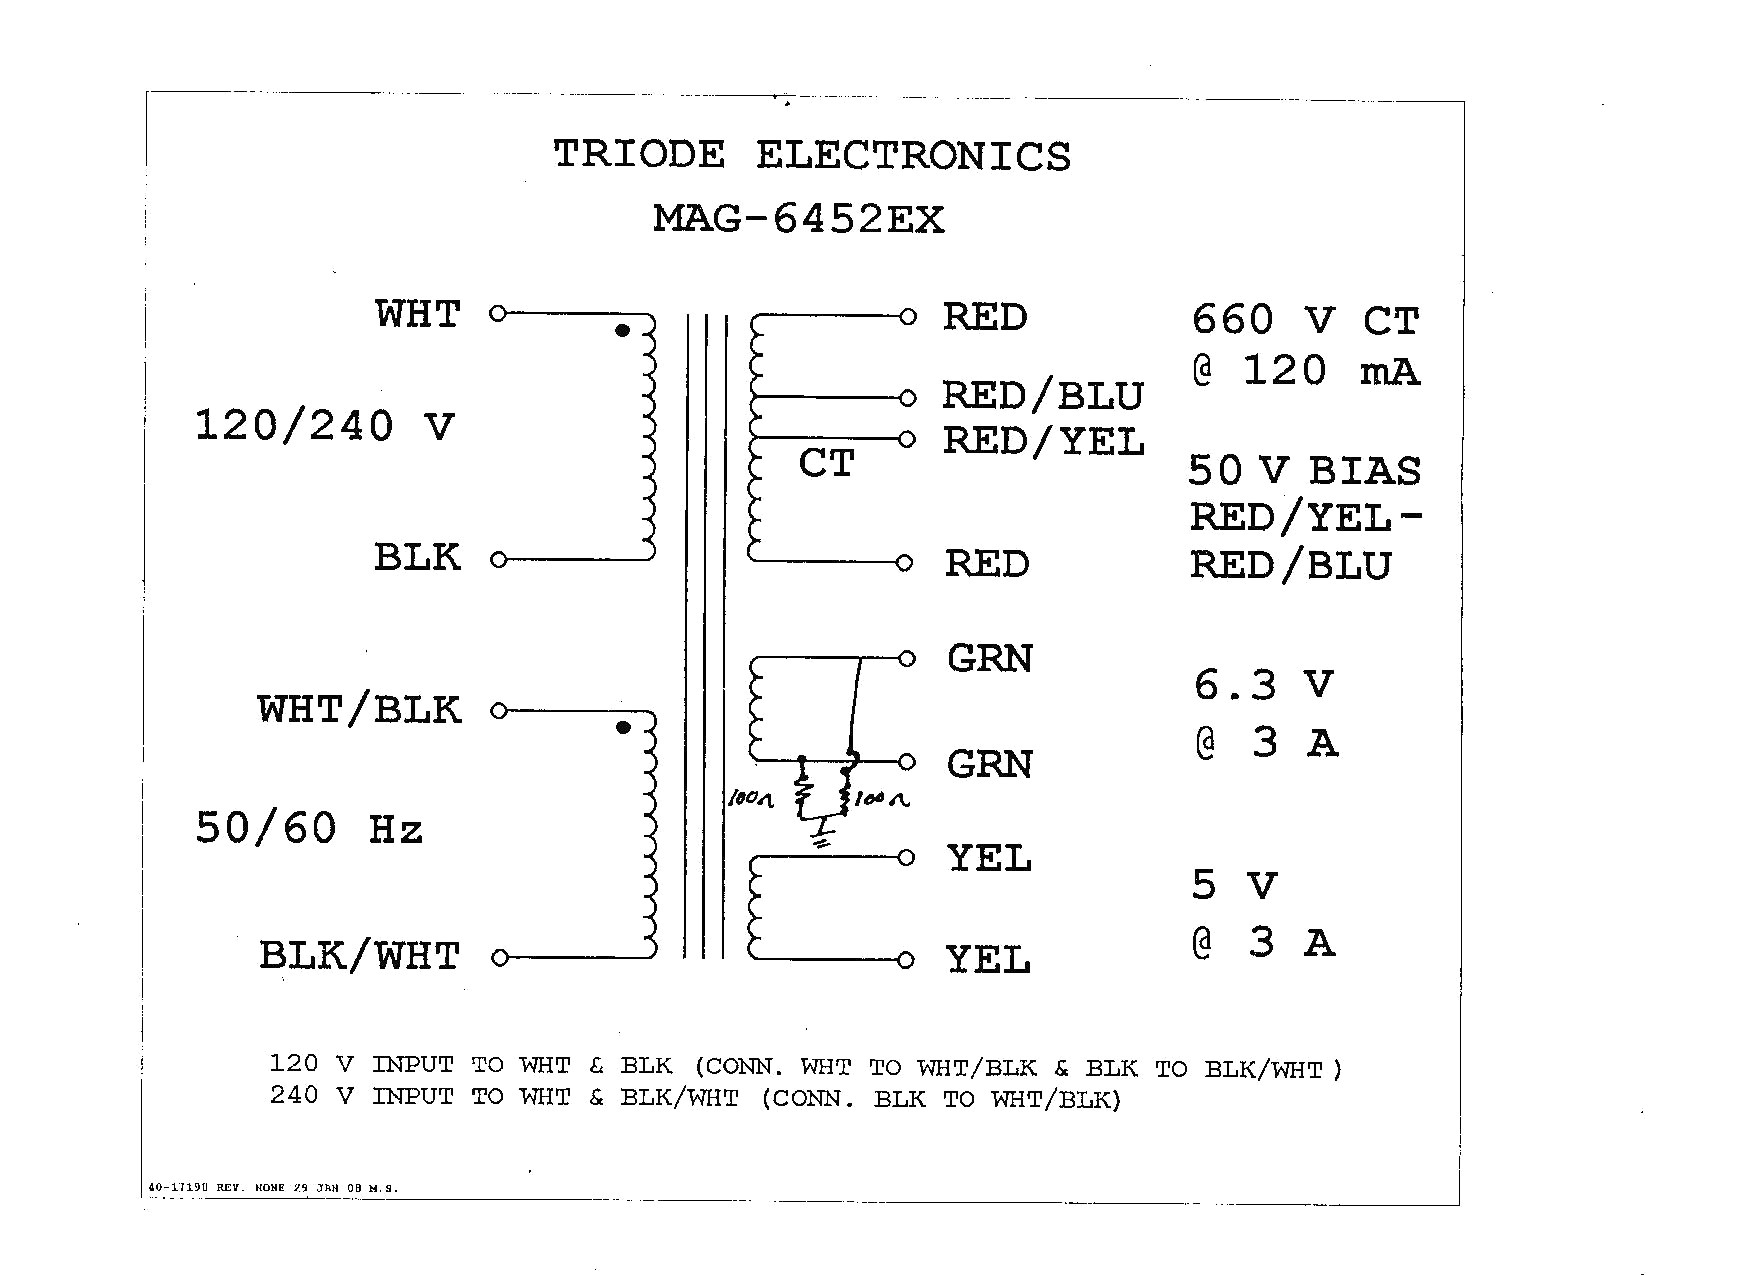 Buck Boost Transformer 208 to 230 Wiring Diagram - 3 Phase Buck Boost Transformer Wiring Diagram Buck Boost Transformer Wiring Diagram Free Diagrams Fancy 9g